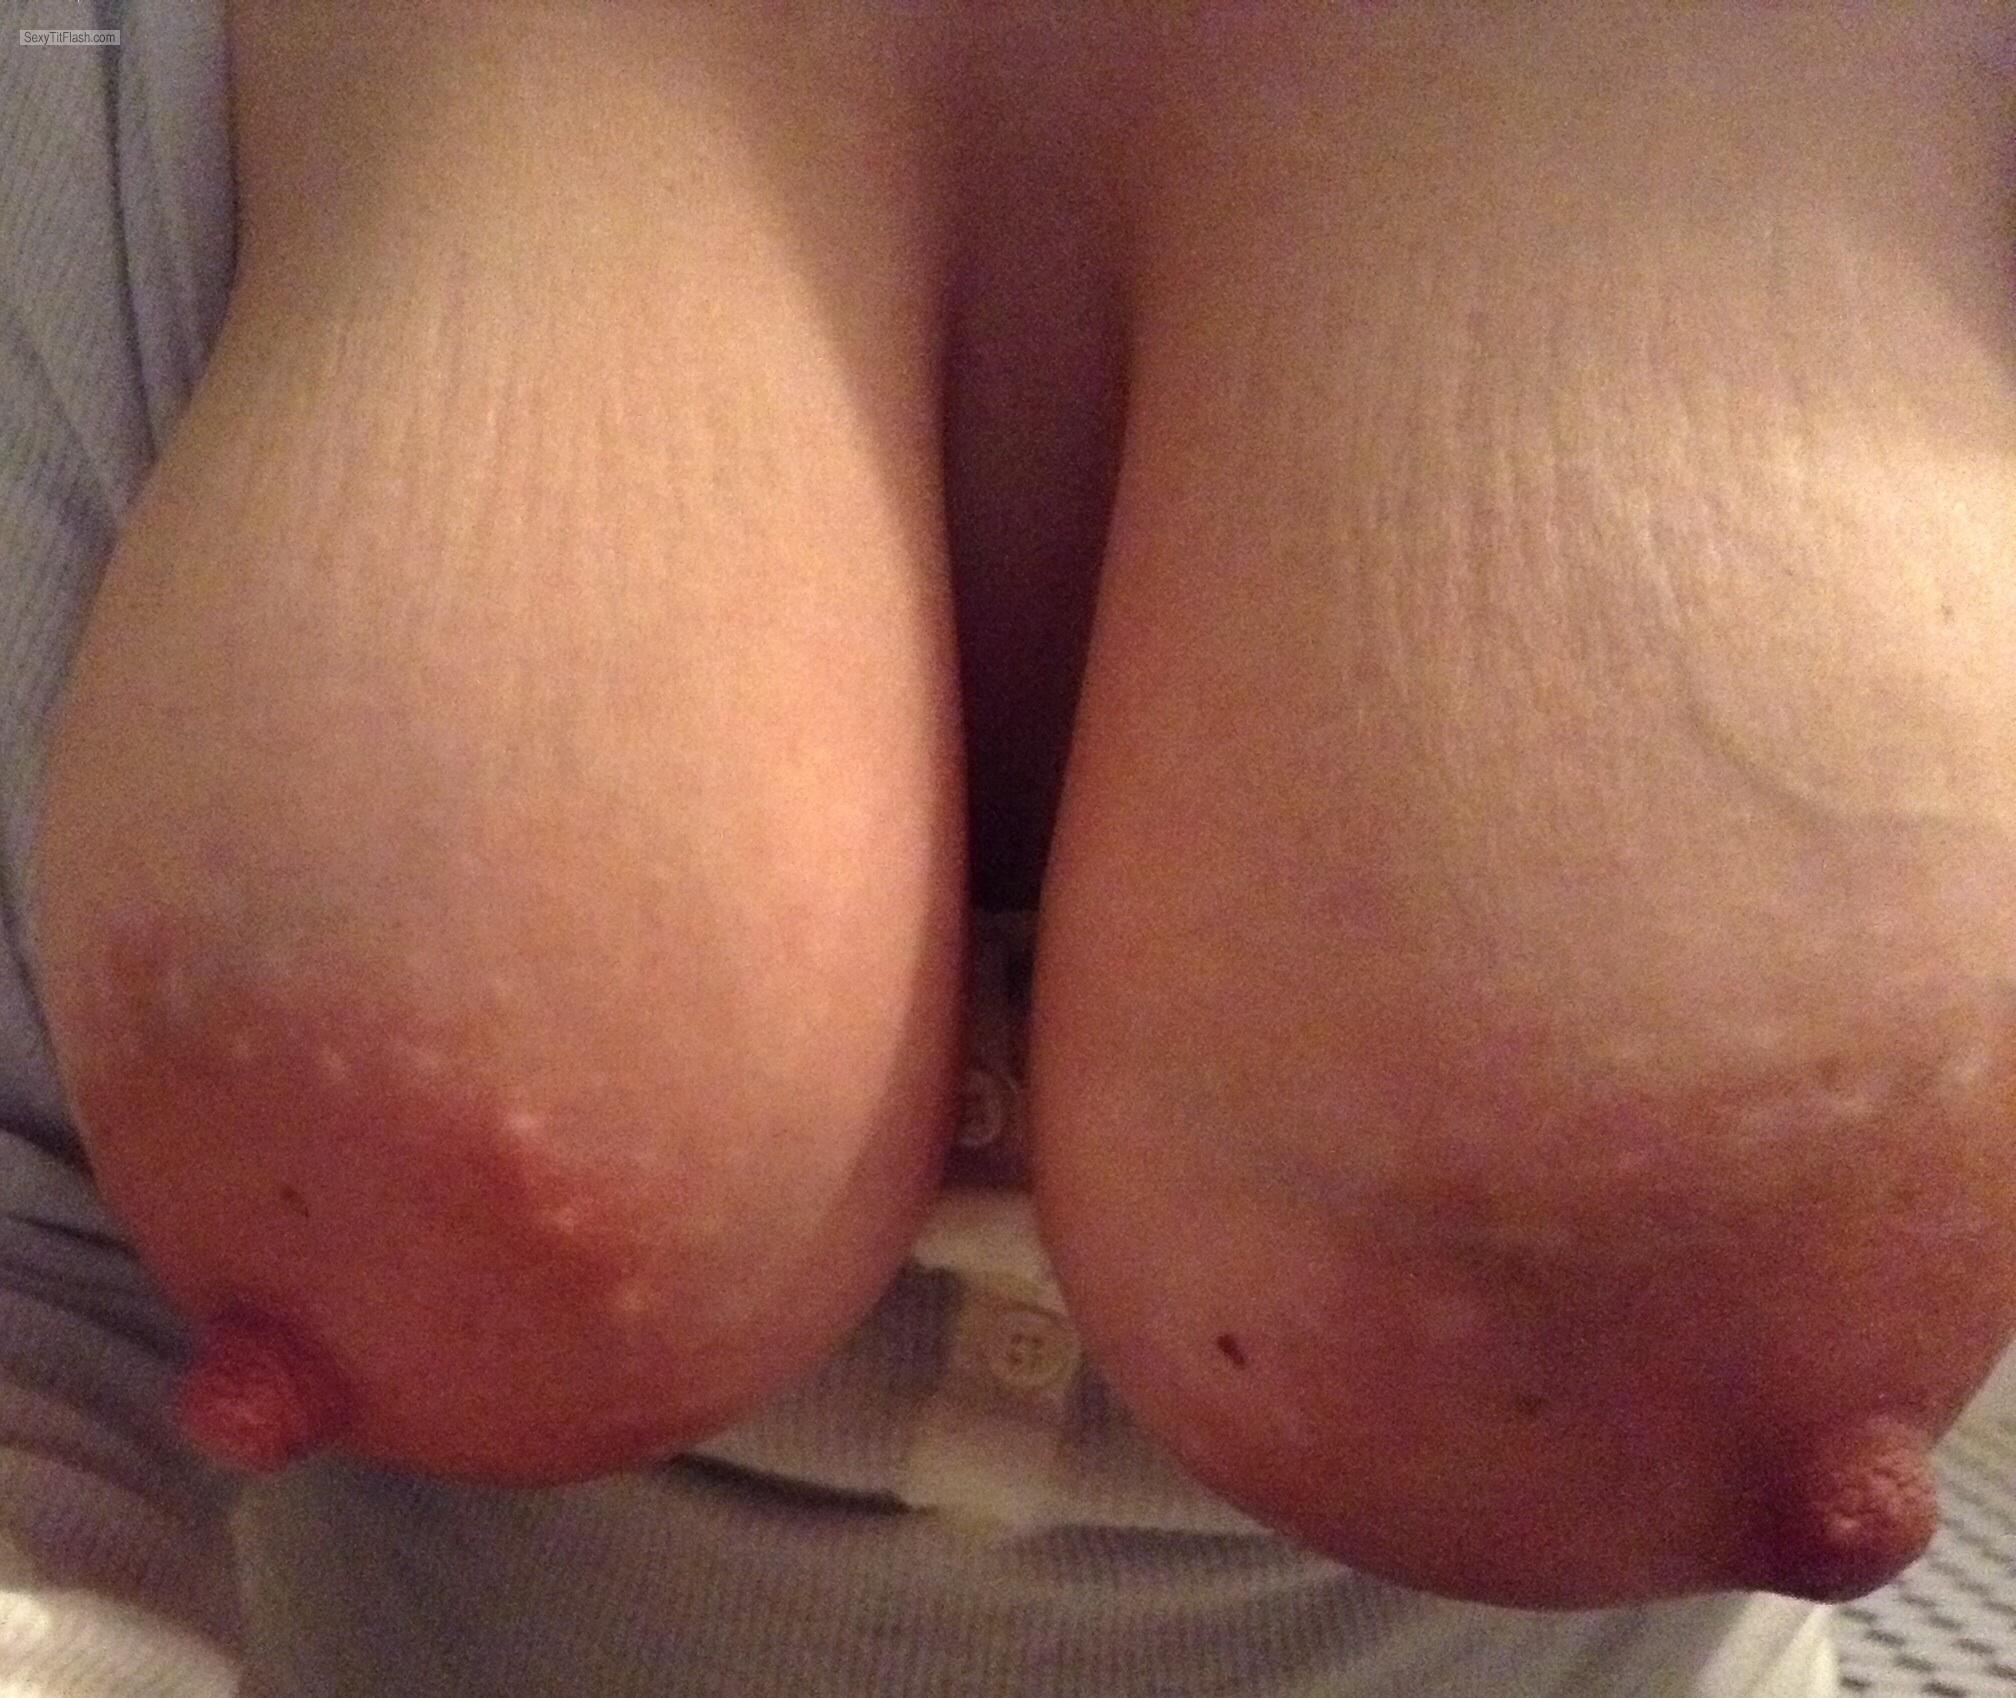 Tit Flash: My Big Tits (Selfie) - Tittymom from United States